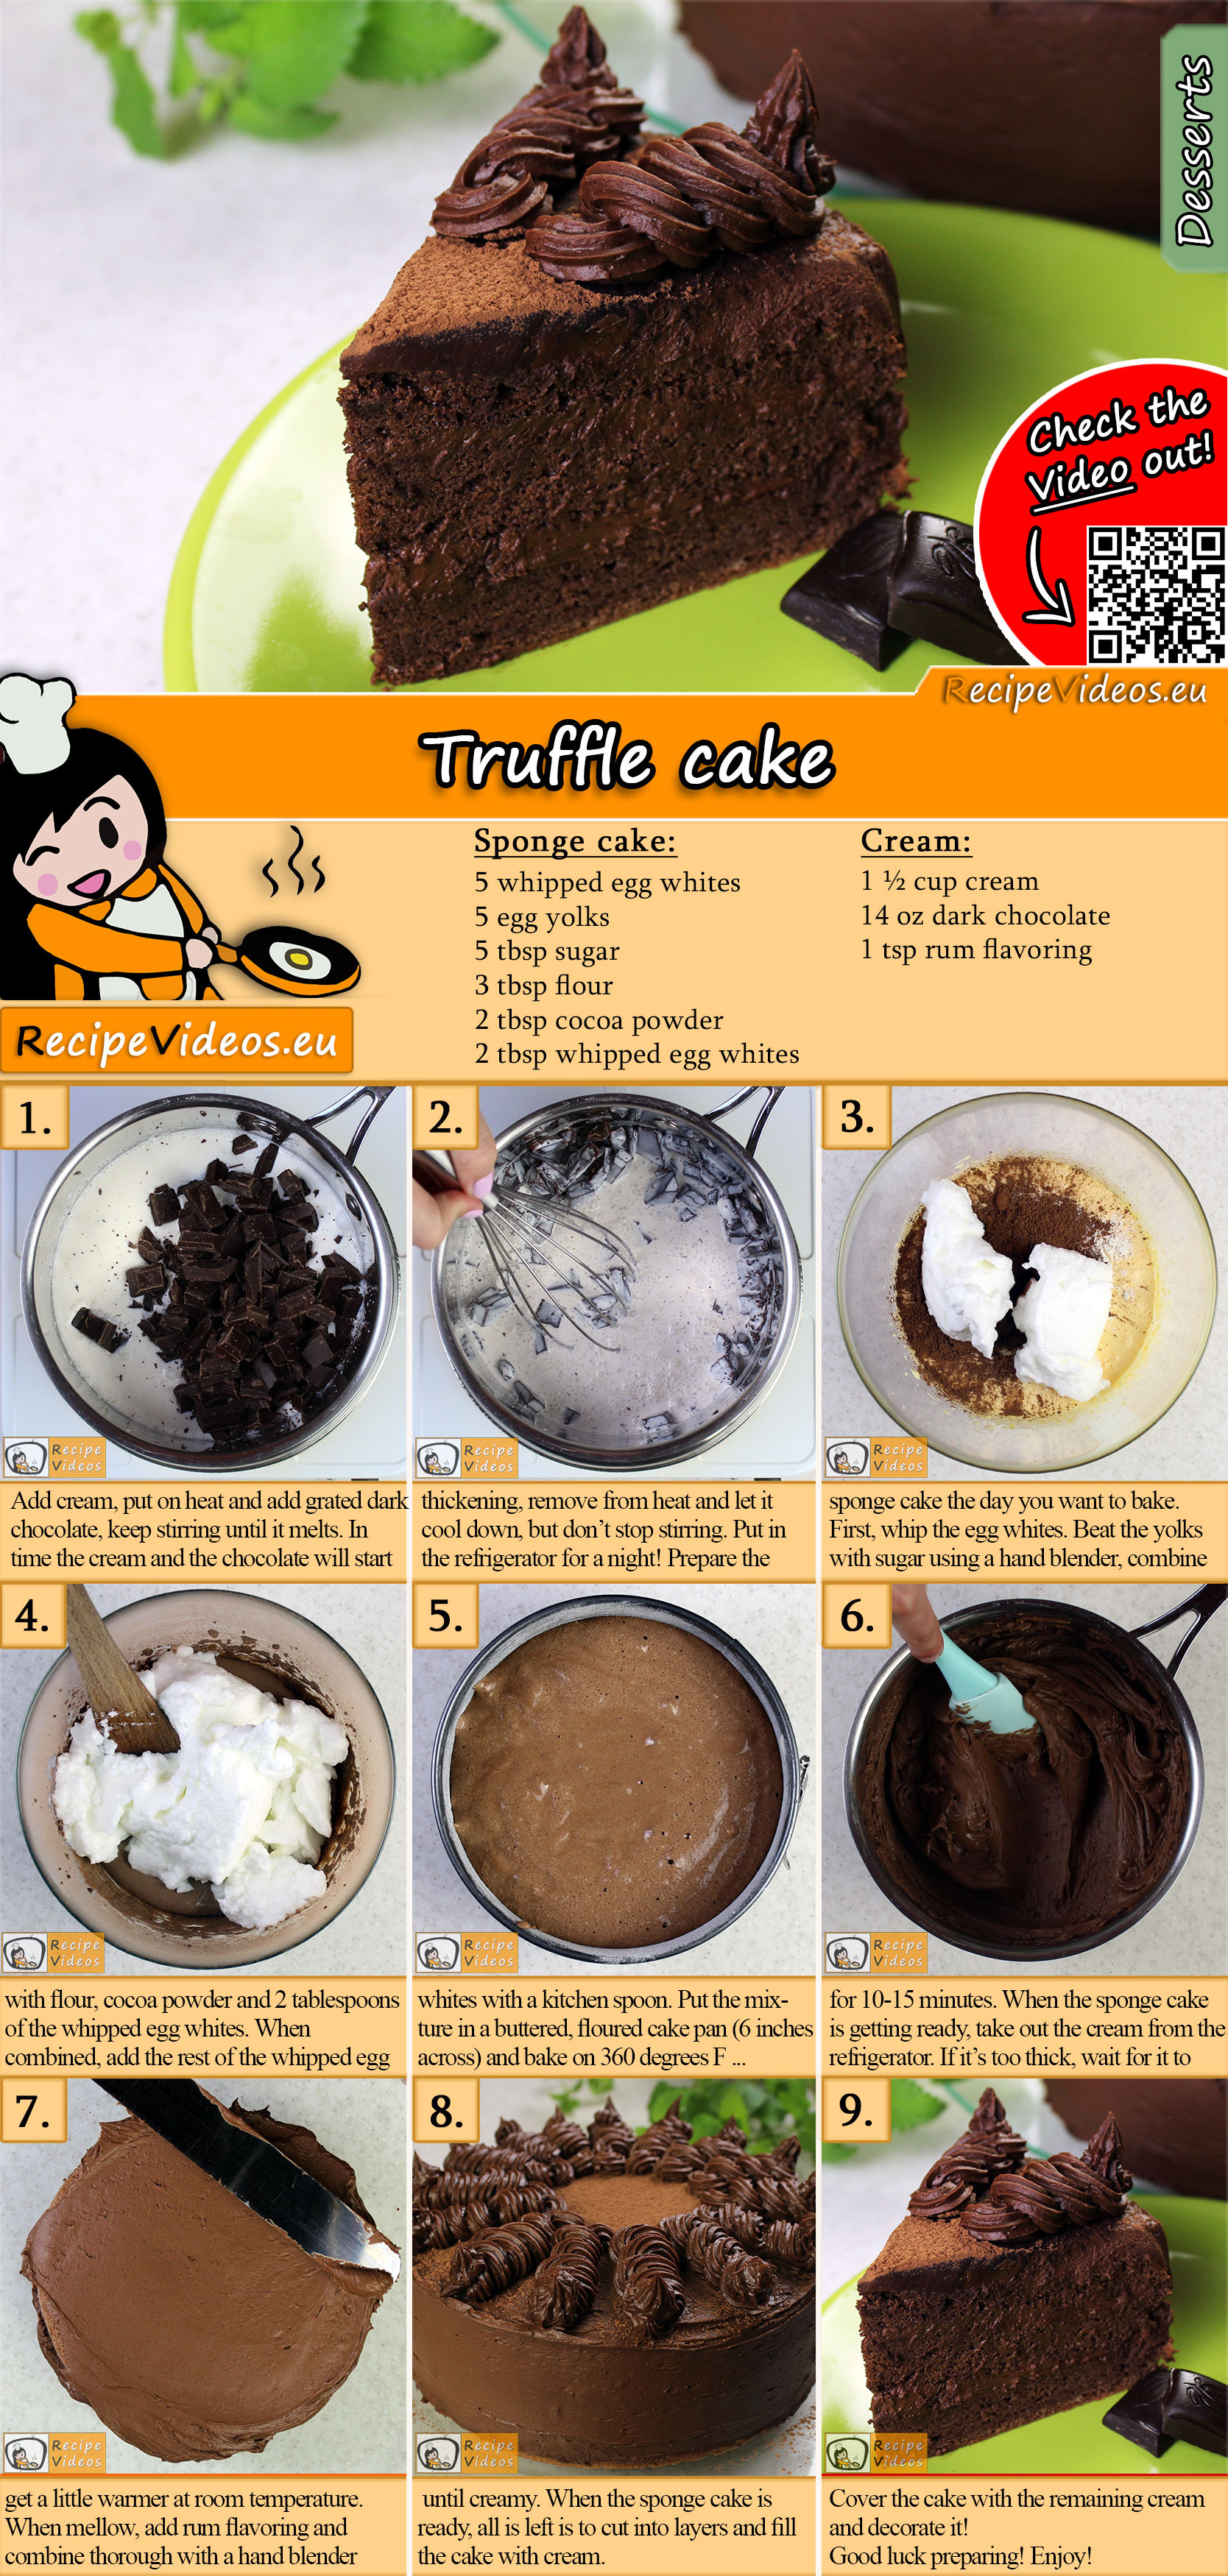 Truffle cake recipe with video